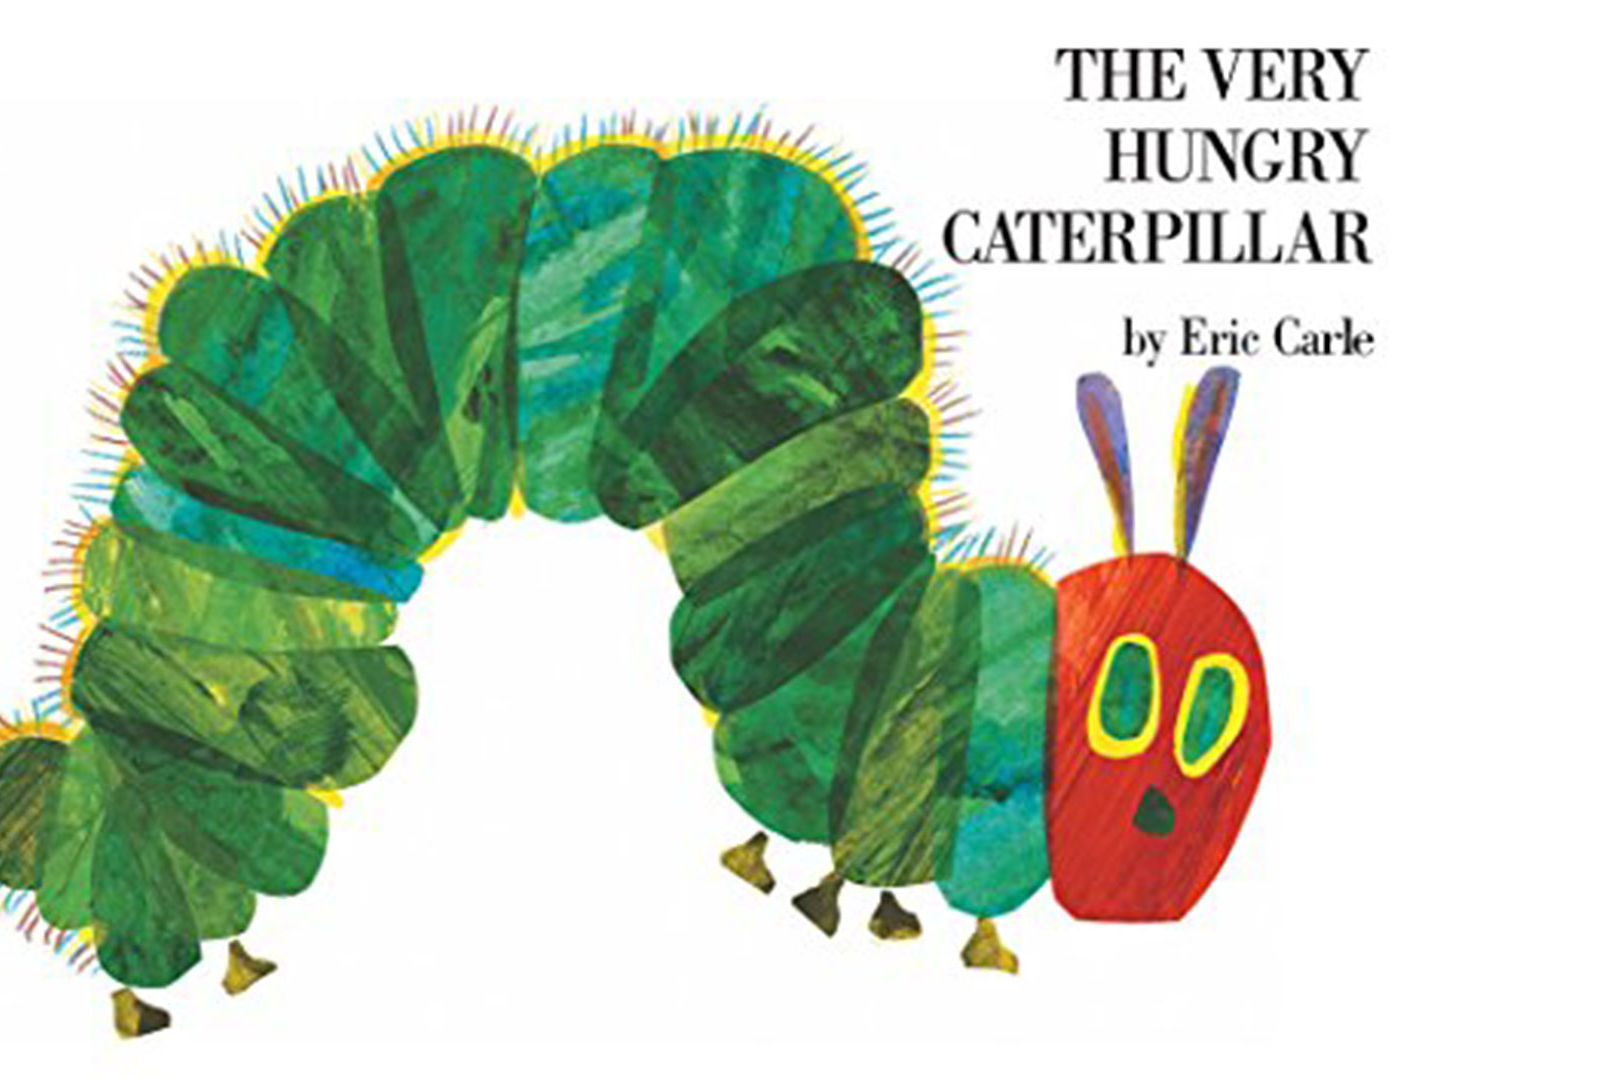 On Its 50th Anniversary, an Expert Discusses the Enduring Appeal of <i>The Very Hungry Caterpillar</i>